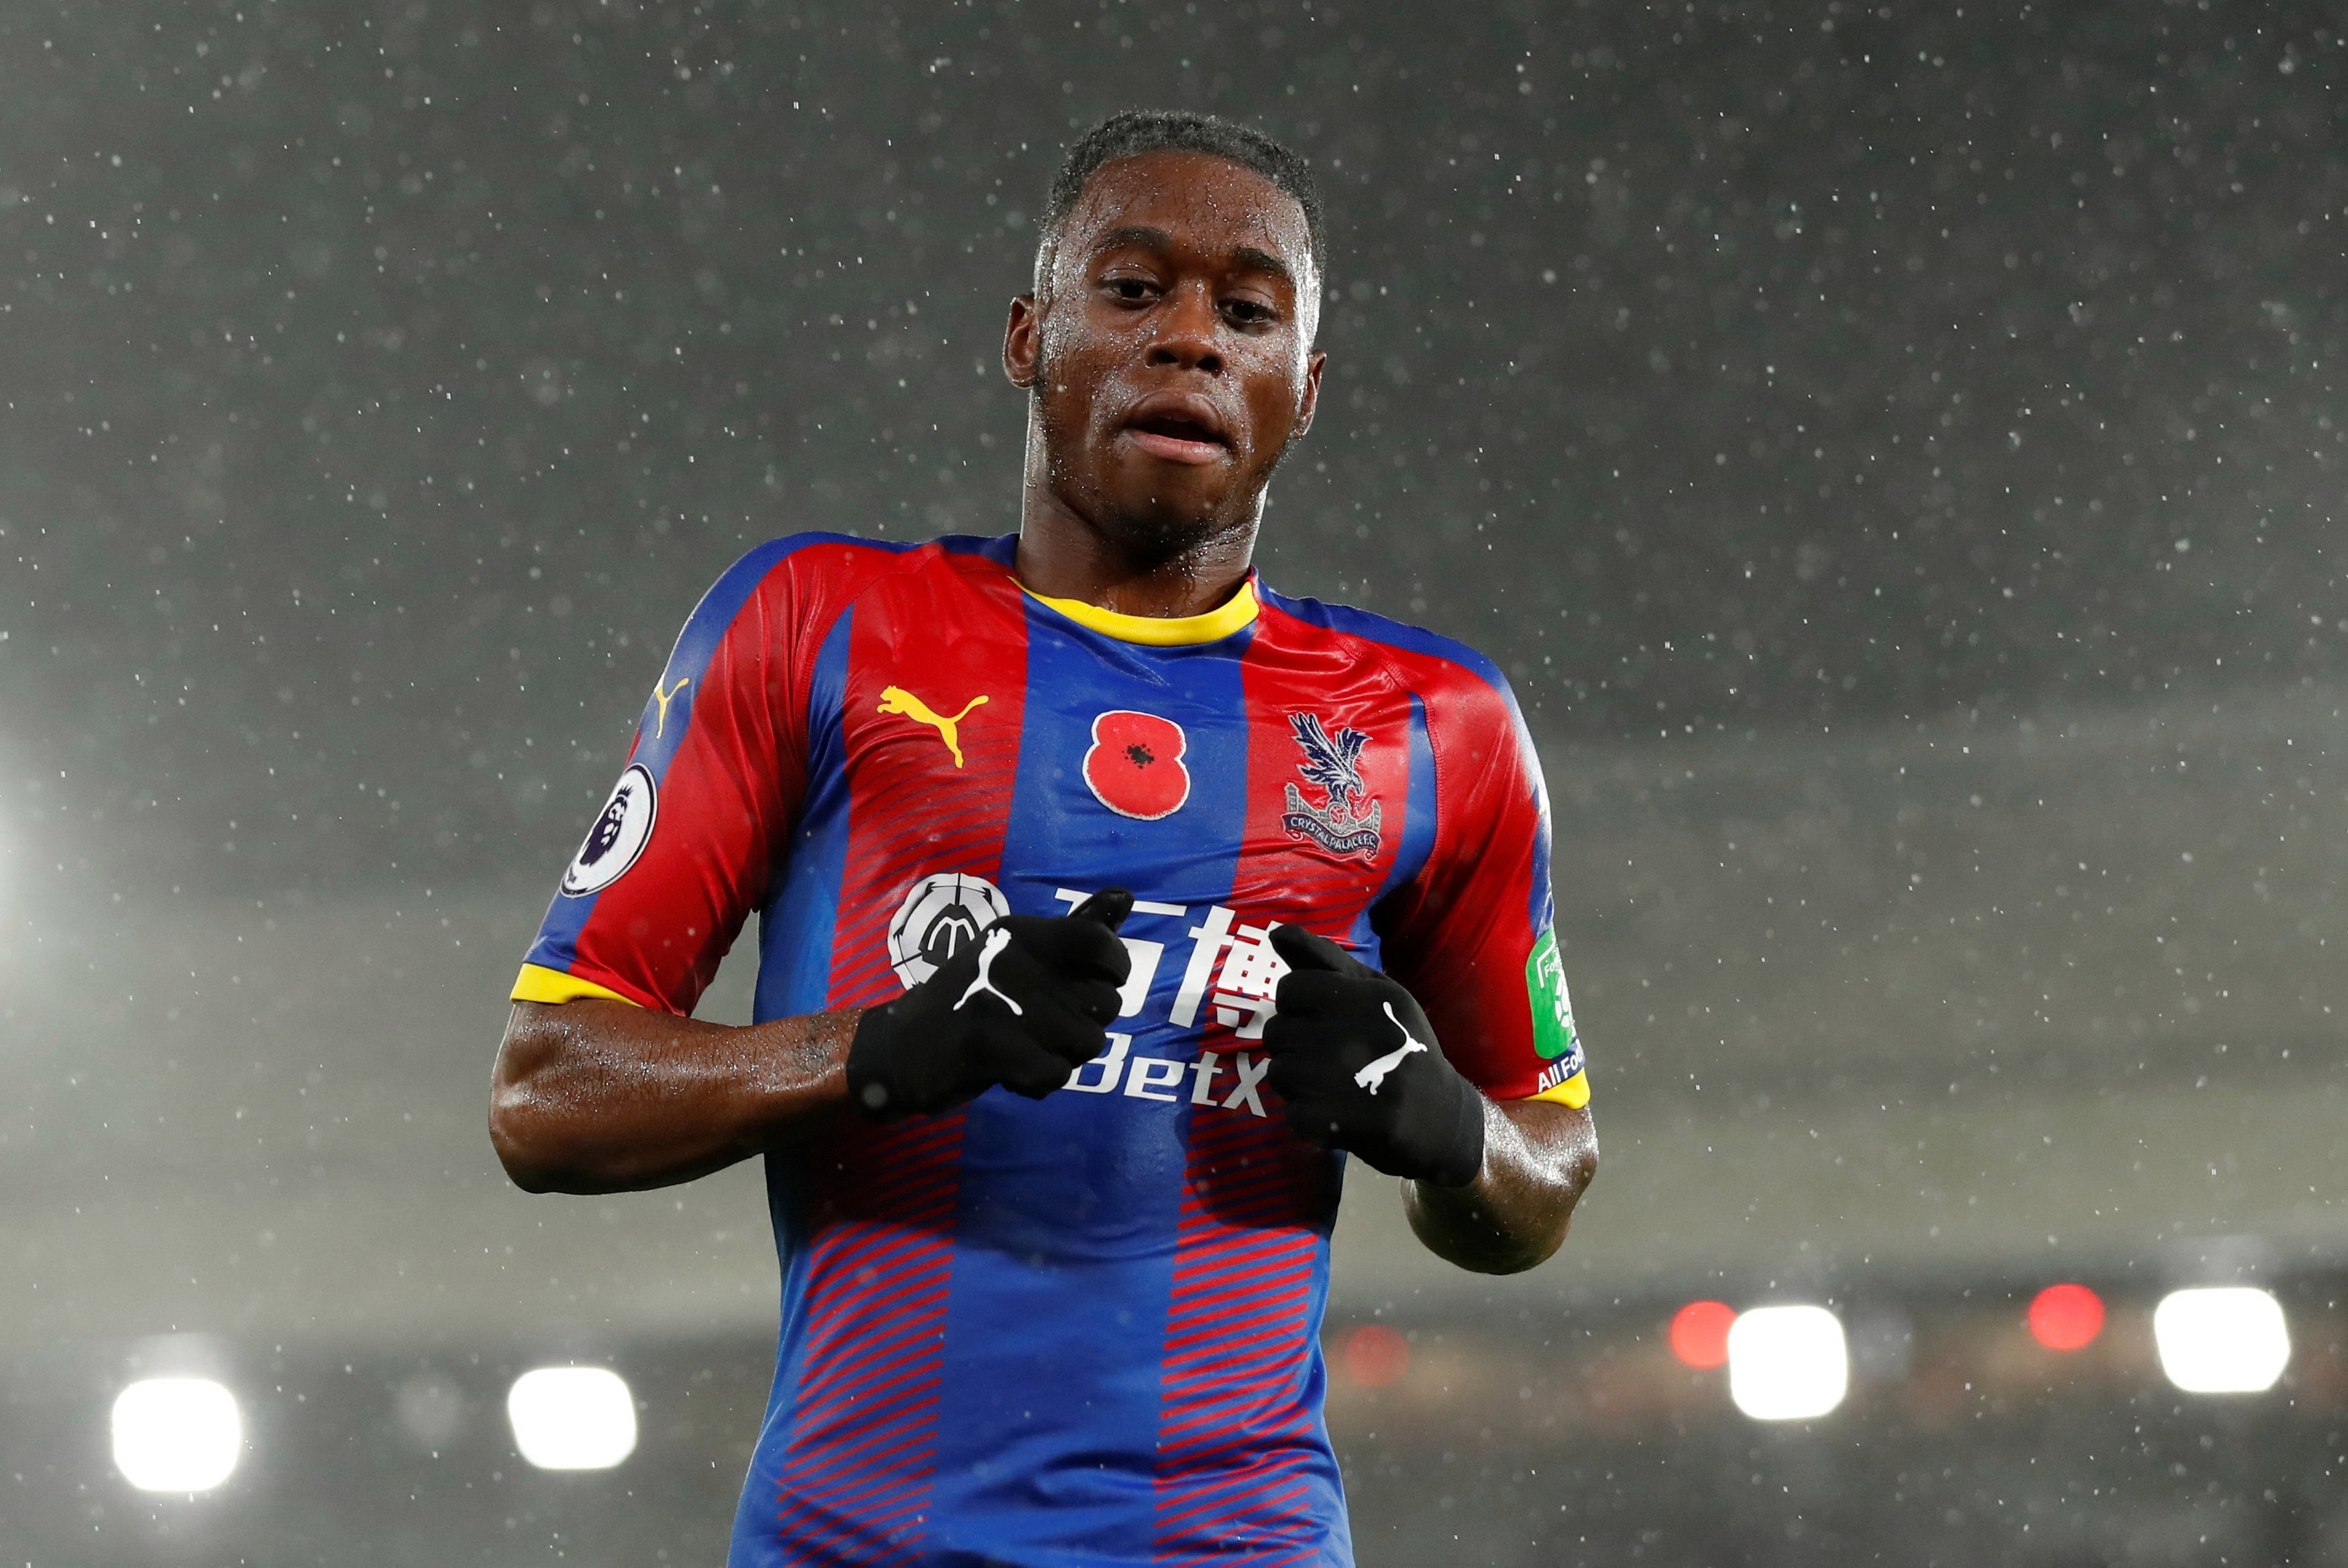 Crystal Palace right-back Aaron Wan-Bissaka is a summer target for Arsenal